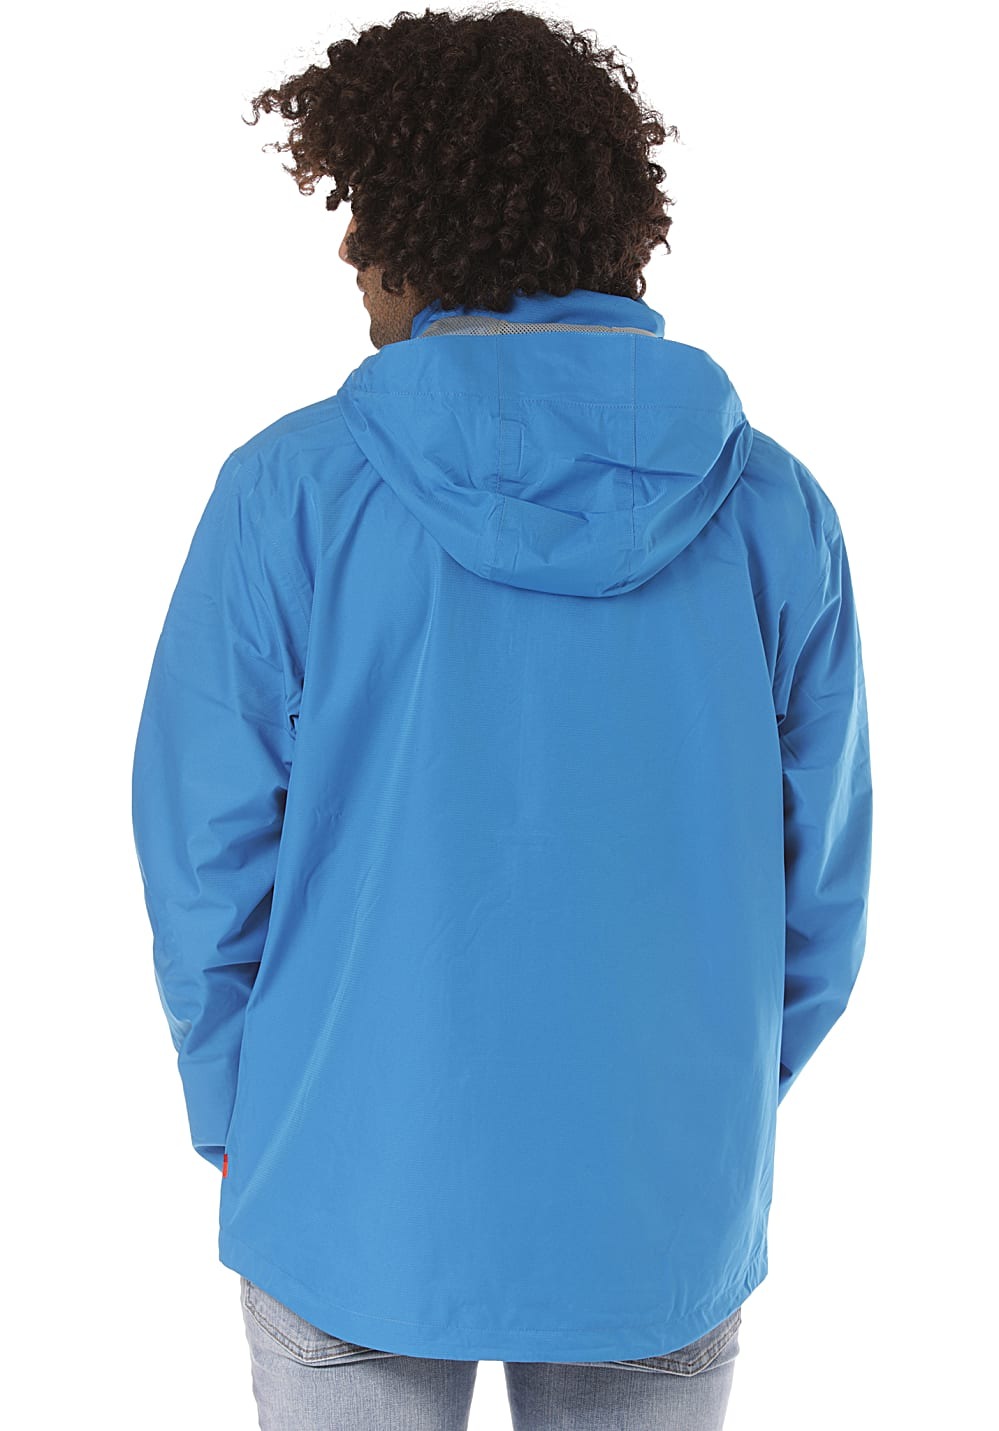 hot sales 63efb cc65f Vaude Escape Light - Jacket for Men - Blue